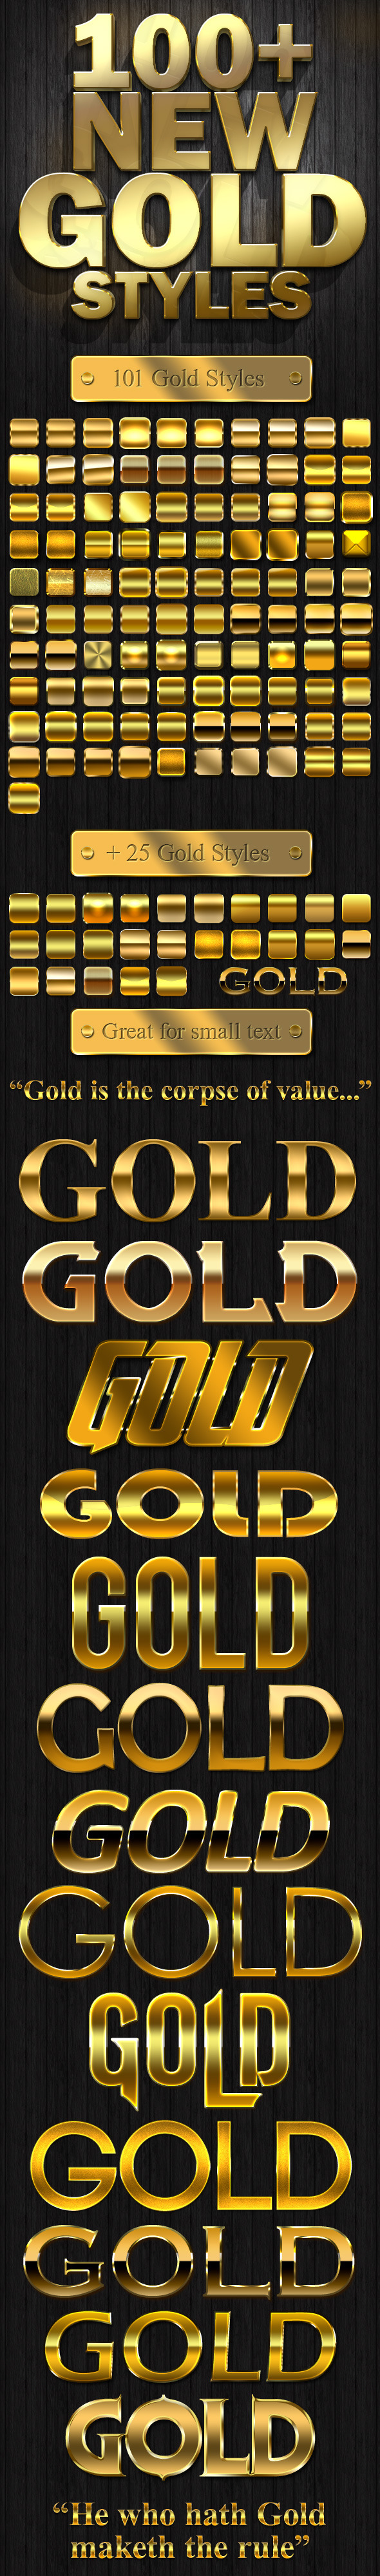 Graphicriver | 100+ New Gold Styles Free Download free download Graphicriver | 100+ New Gold Styles Free Download nulled Graphicriver | 100+ New Gold Styles Free Download